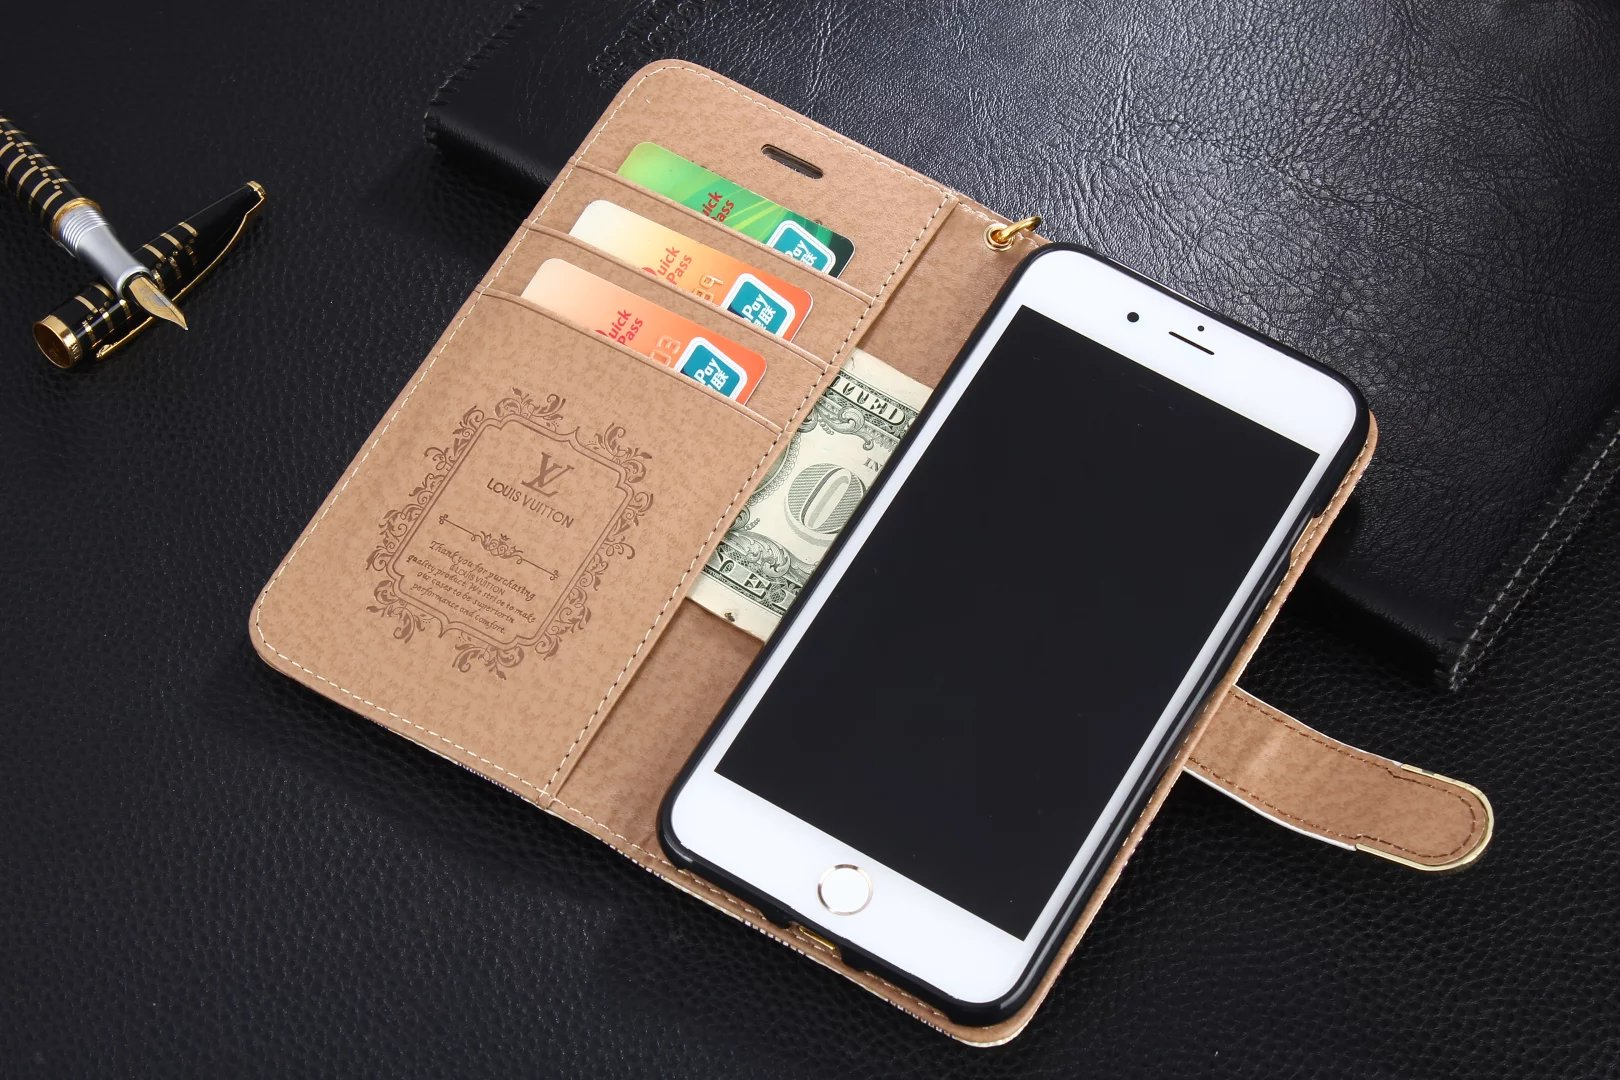 s6 edge plus hard case cell phone cases for galaxy s6 edge plus fashion Galaxy S6 edge Plus case galaxy s6 edge plus window case best cases samsung galaxy s6 edge plus samsung galaxy s6 edge plus mobile phone speck galaxy s6 edge plus cases for the s6 edge plus samsung galaxy s6 edge plus cases uk